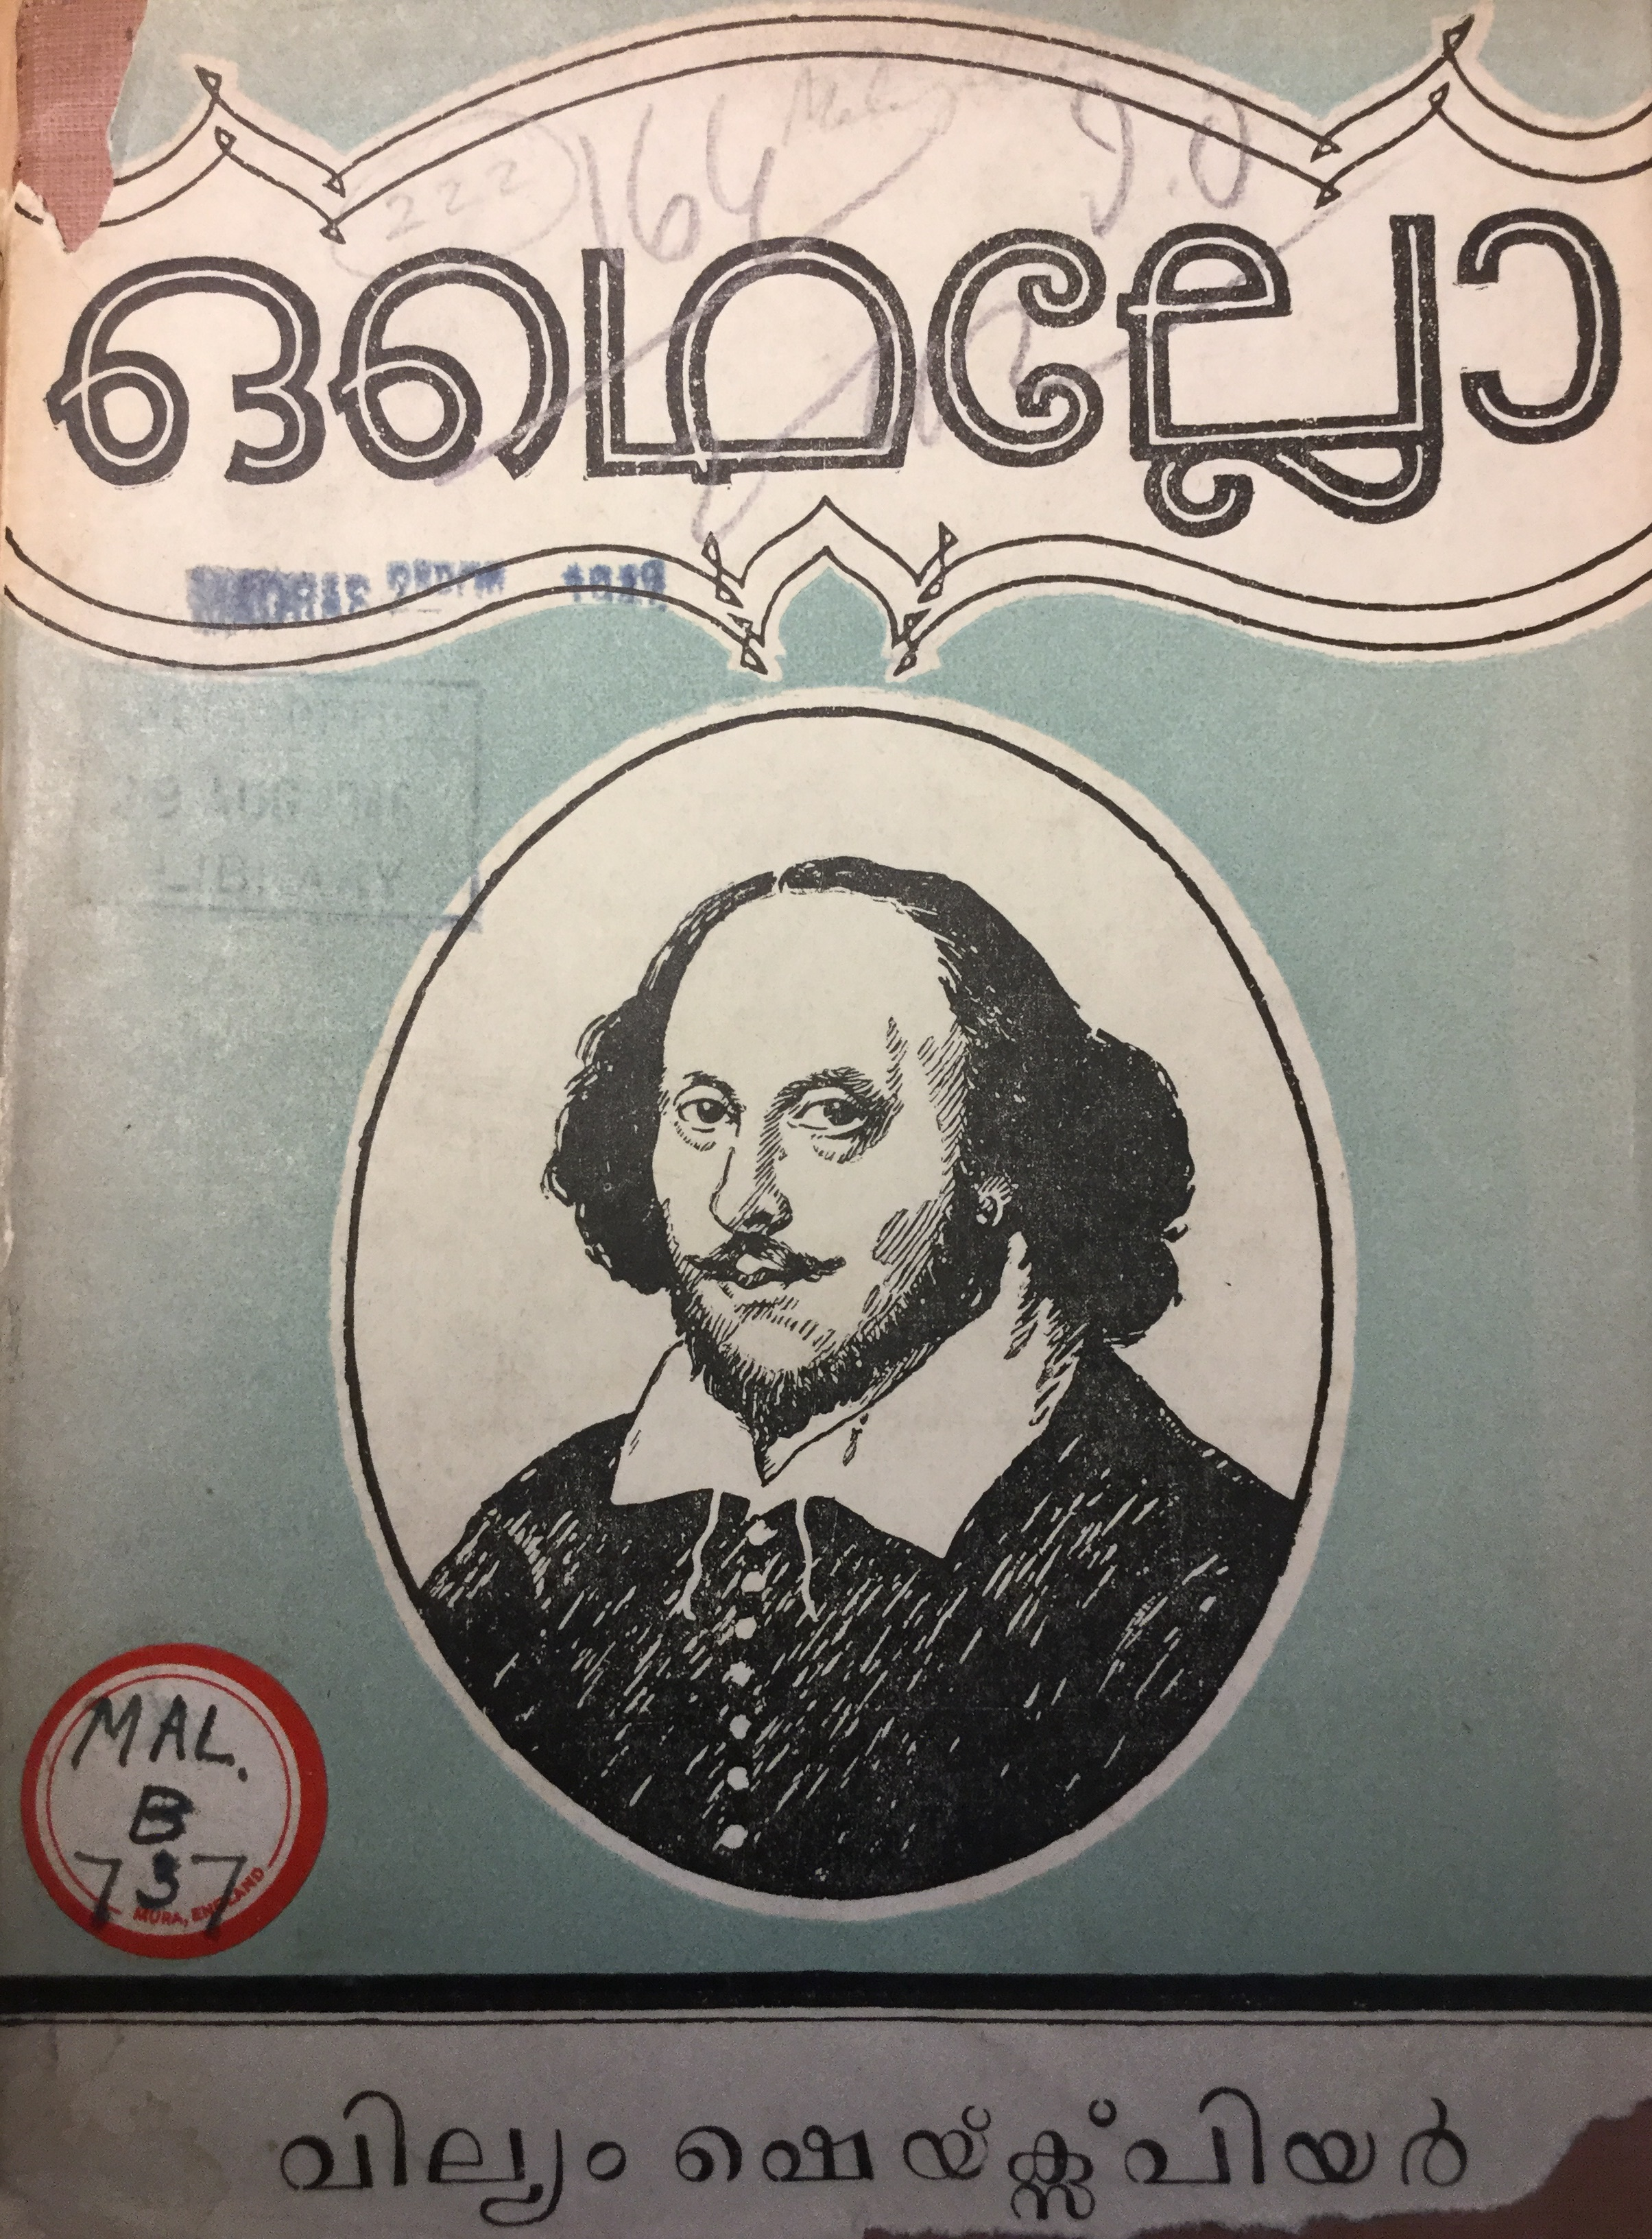 Front cover of William Shakespeare's 'Othello' in Malayalam (1942, British Library, Mal B 737)